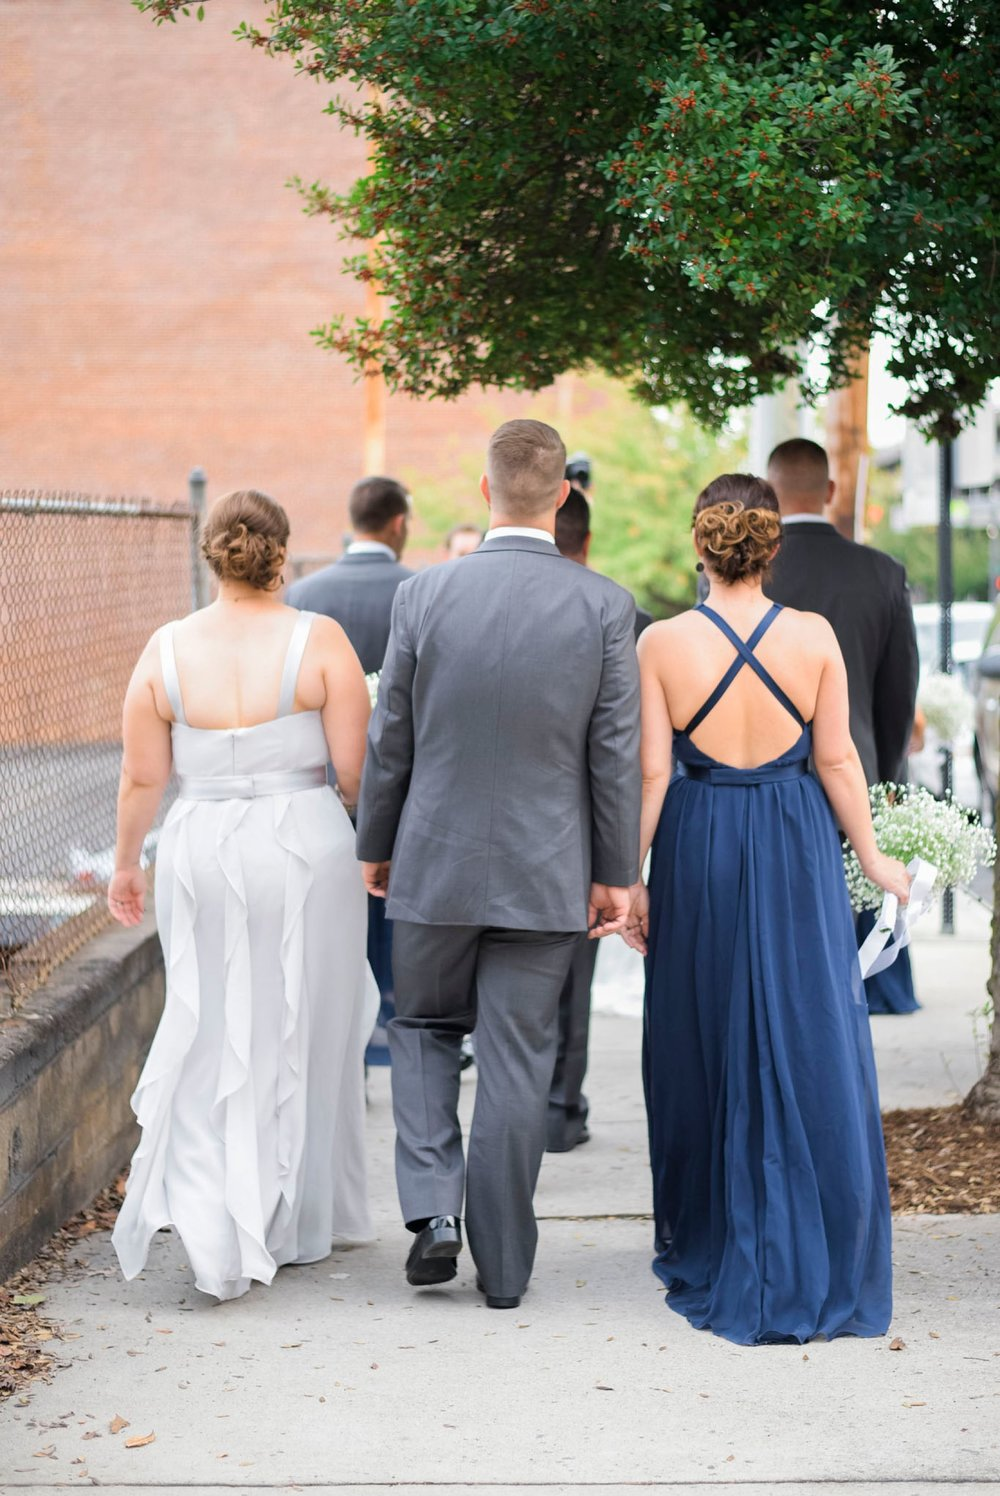 Trescaon8th_DowntownLynchburg_Virginiaweddingphotographer 54.jpg